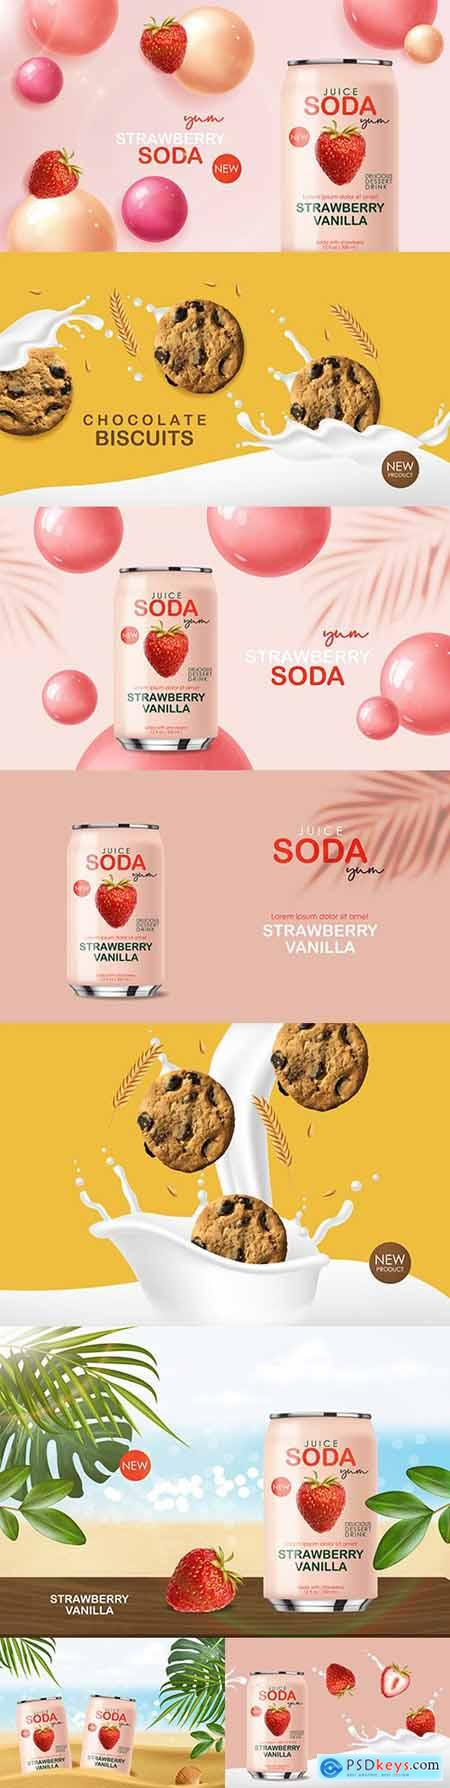 Soda drink with fruit and chocolate cookies 3d realistic design